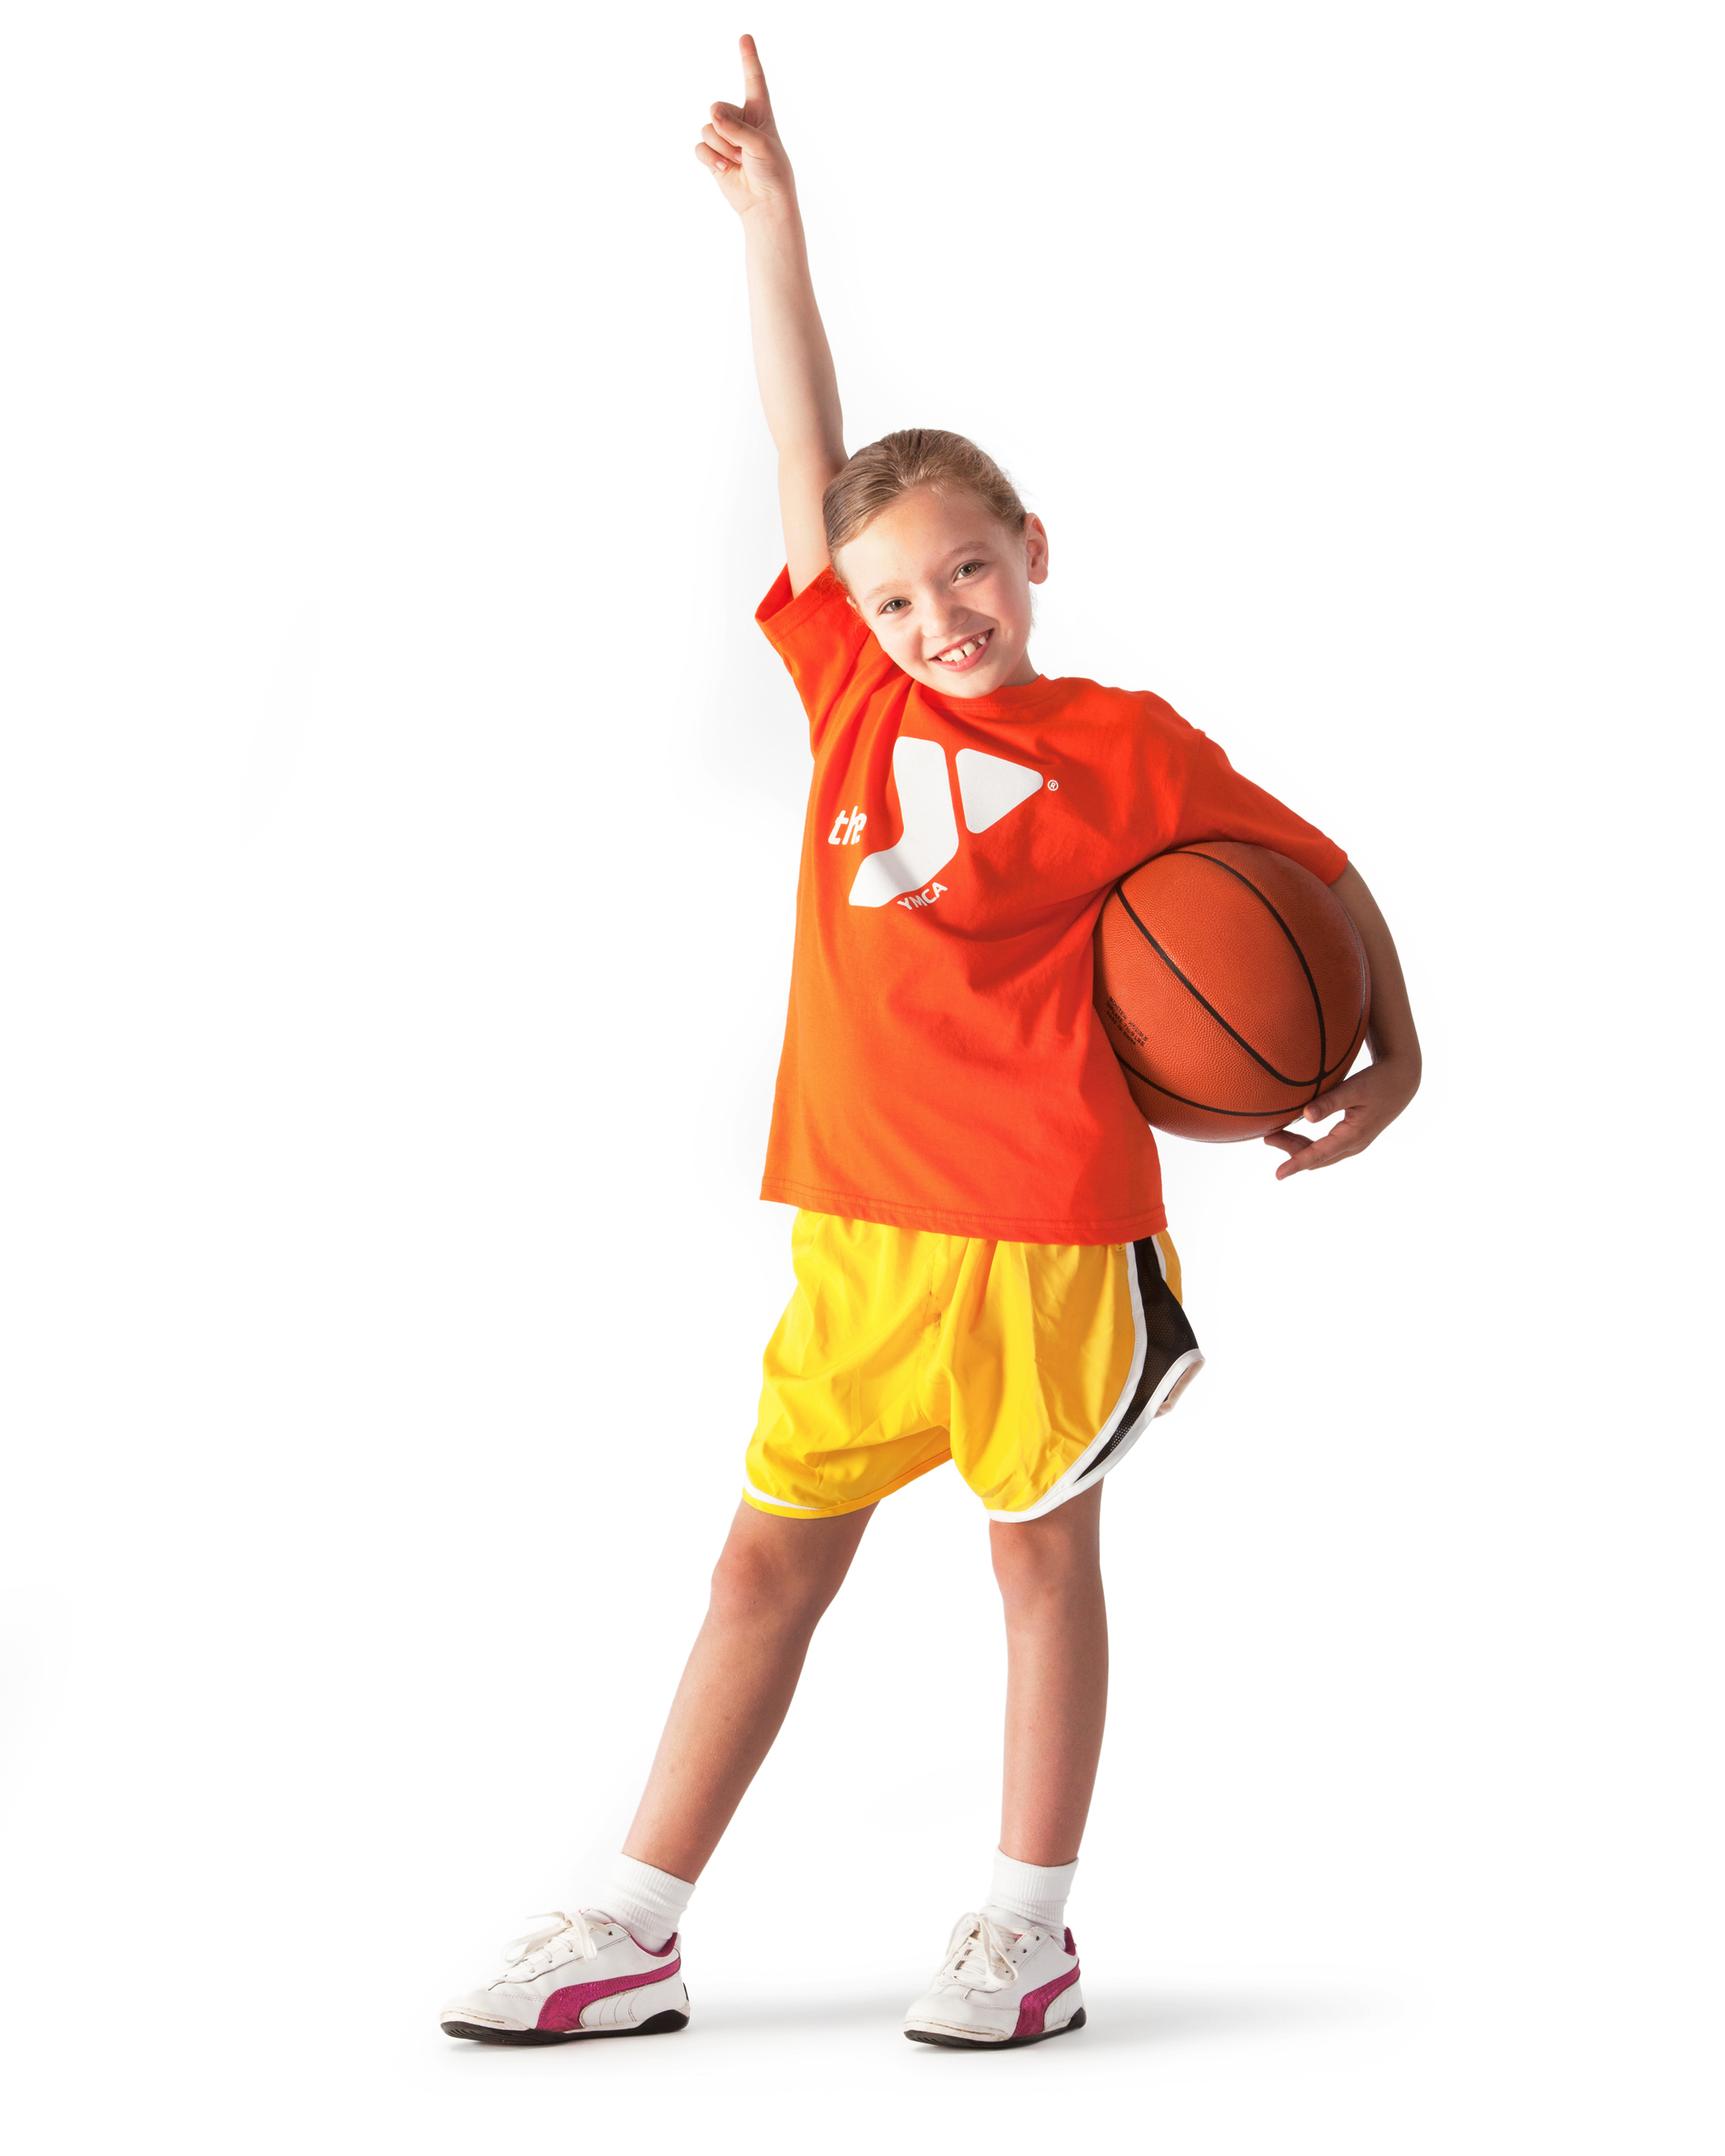 Children S Youth Sports: Child Care, Swimming, Fitness In